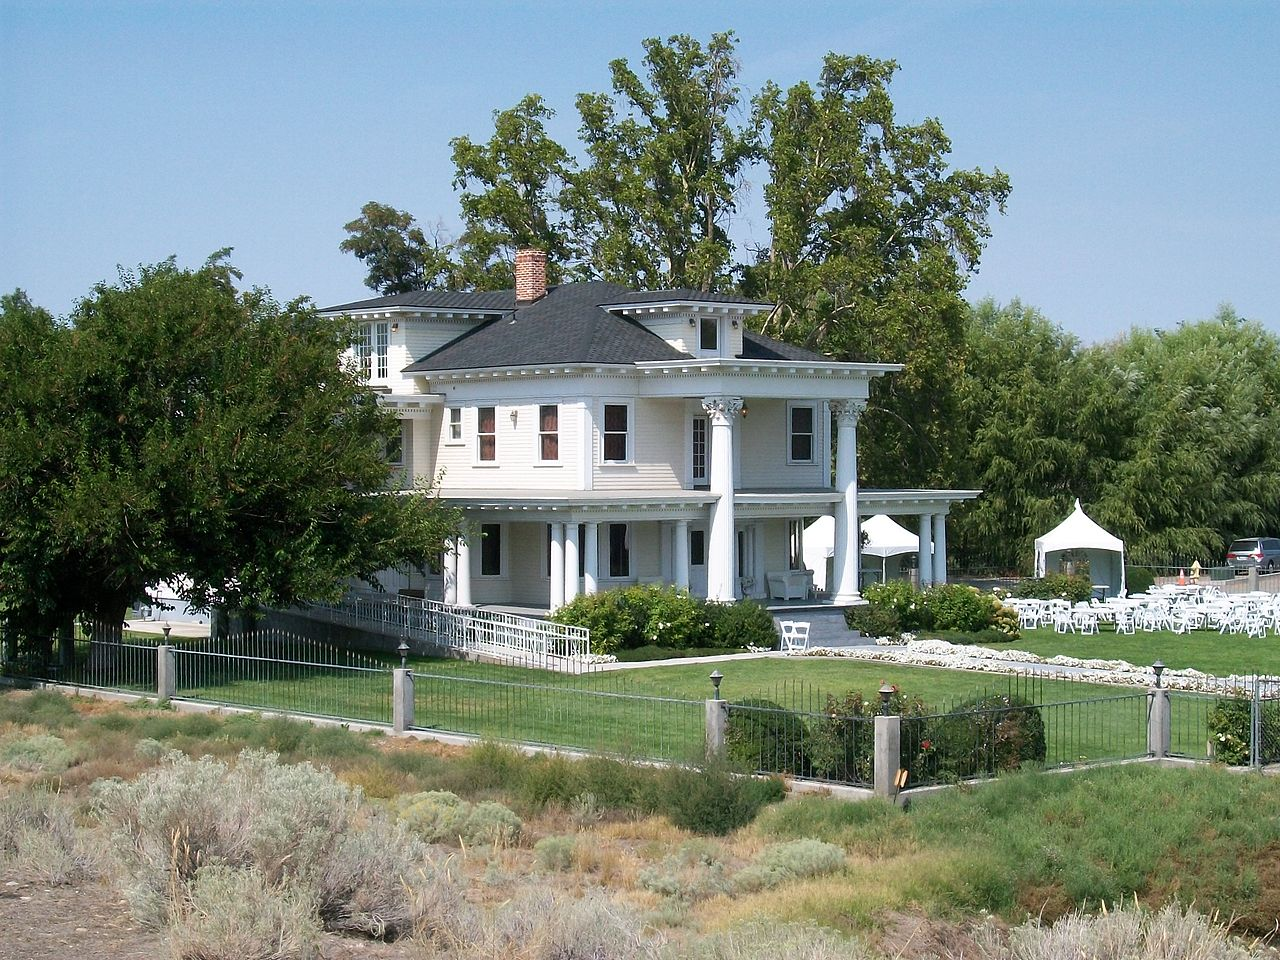 The James Moore Mansion was built in 1908. It is a fine example of Beaux Arts architecture and an important landmark in Pasco.